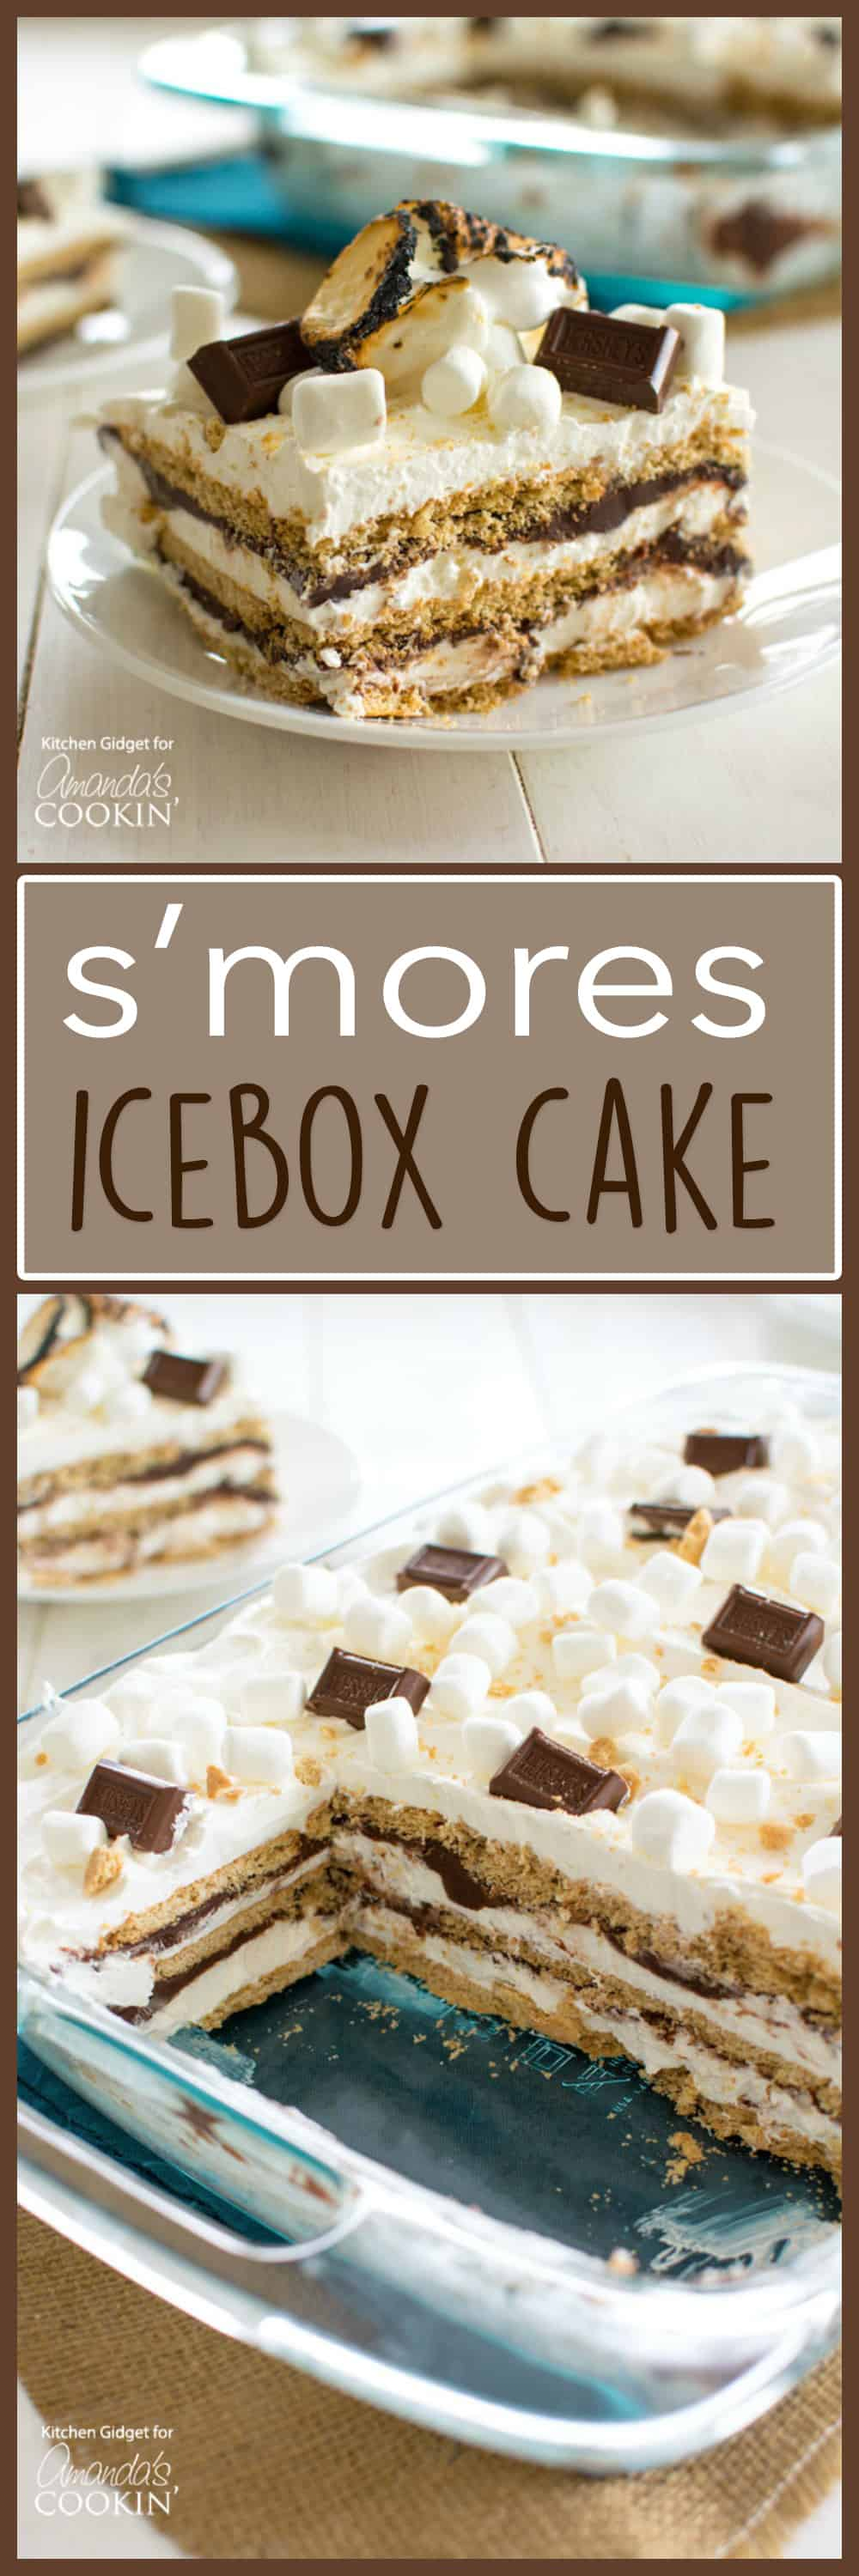 mores Icebox Cake: bring the s'mores indoors with this icebox cake!